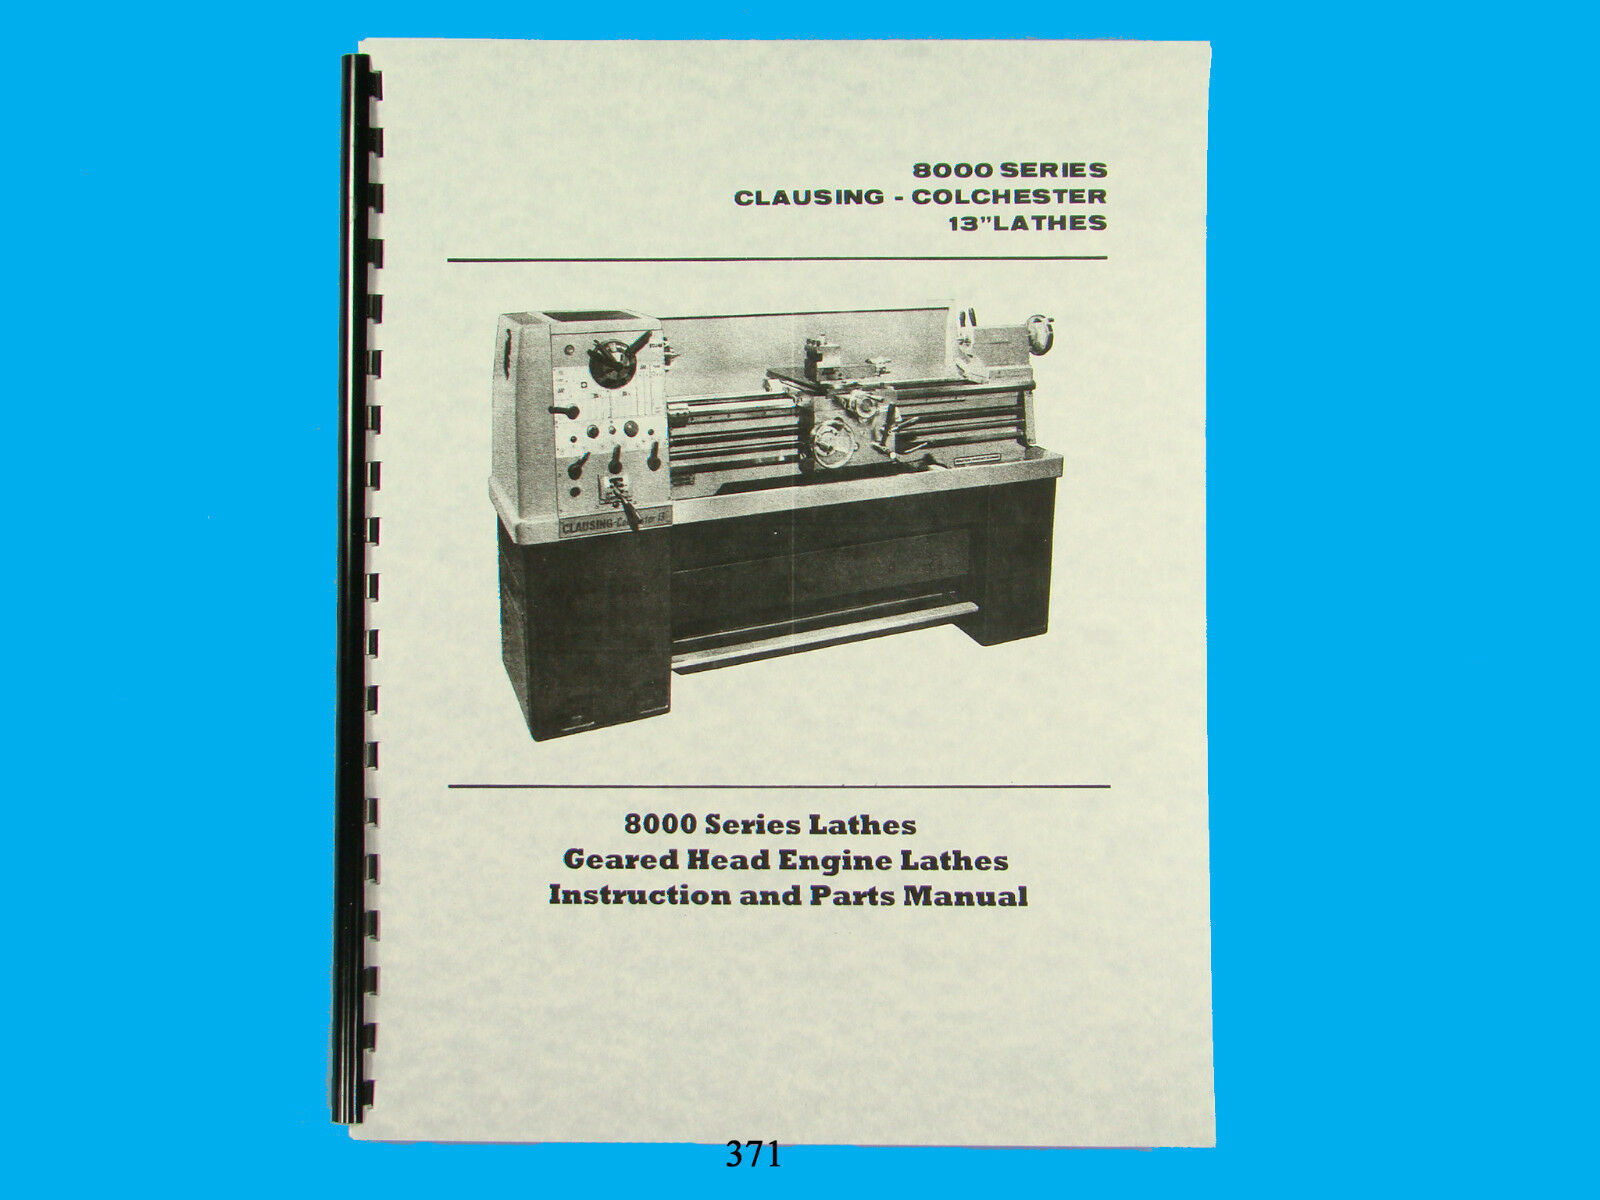 """Clausing Colchester 13"""" Lathe 8000 Series Instruction & Parts List Manual  *371 1 of 4FREE Shipping ..."""